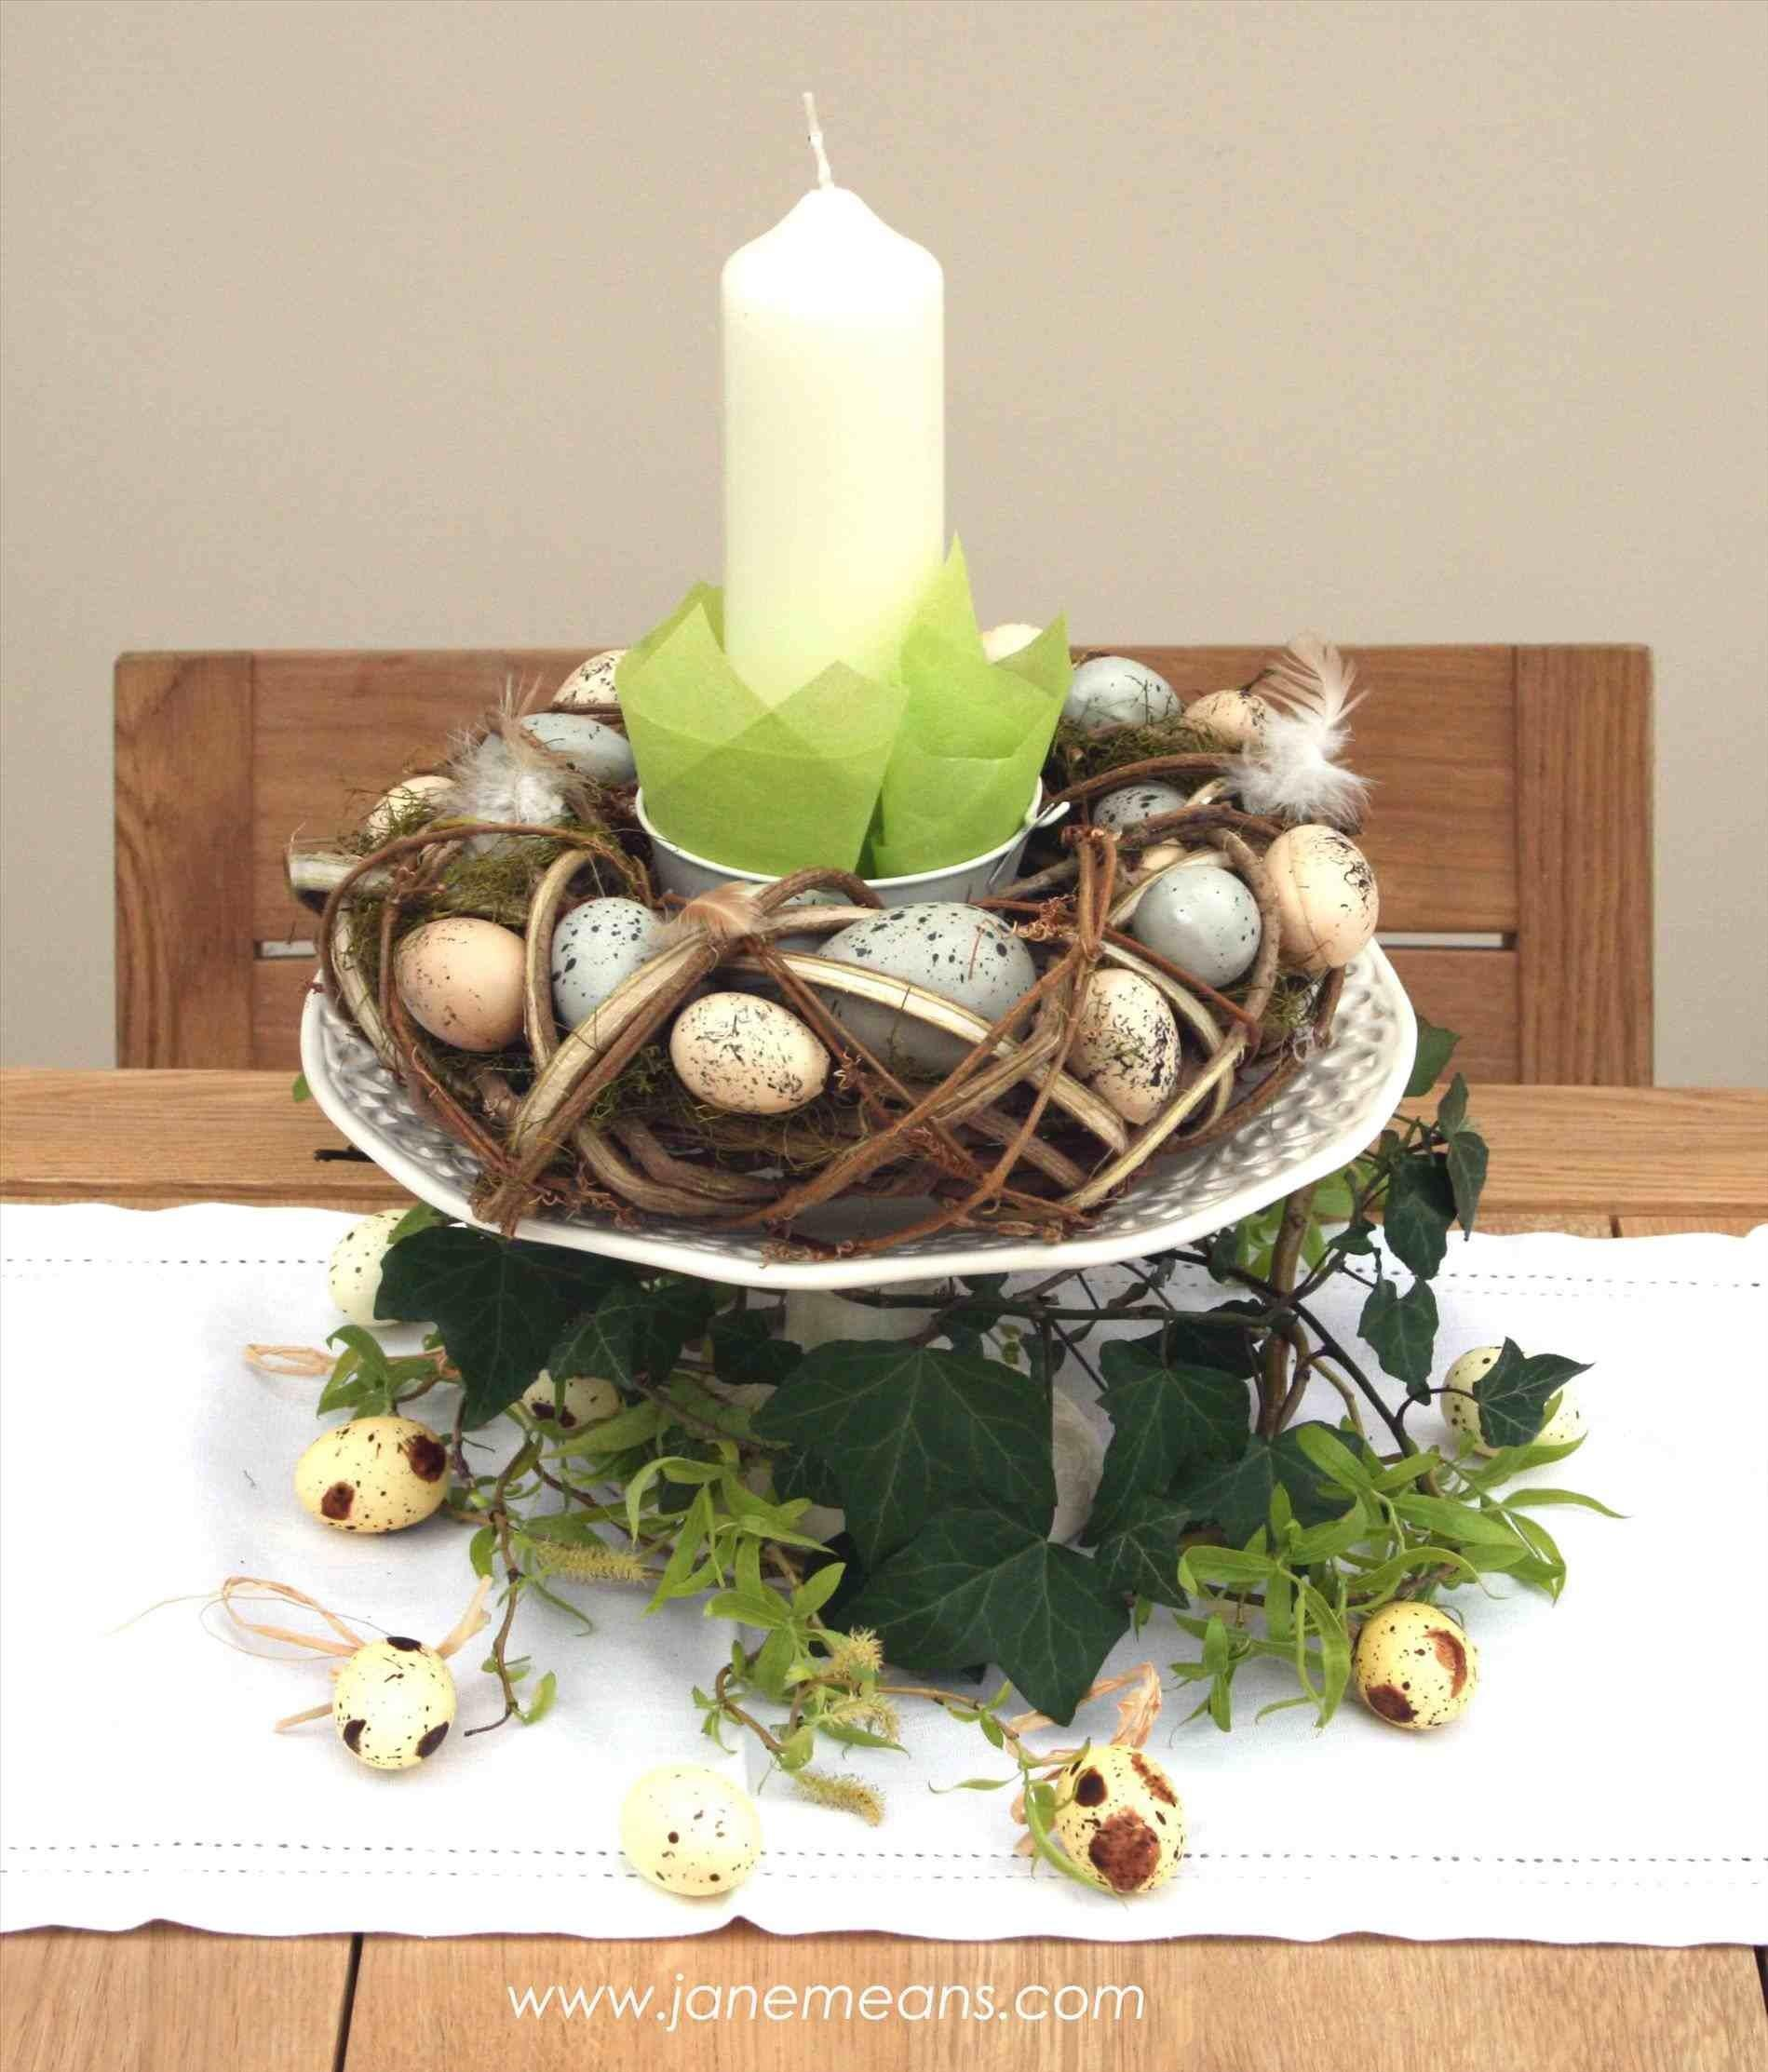 Table Decorations Home Outdoor Dinner Design Ideas Present